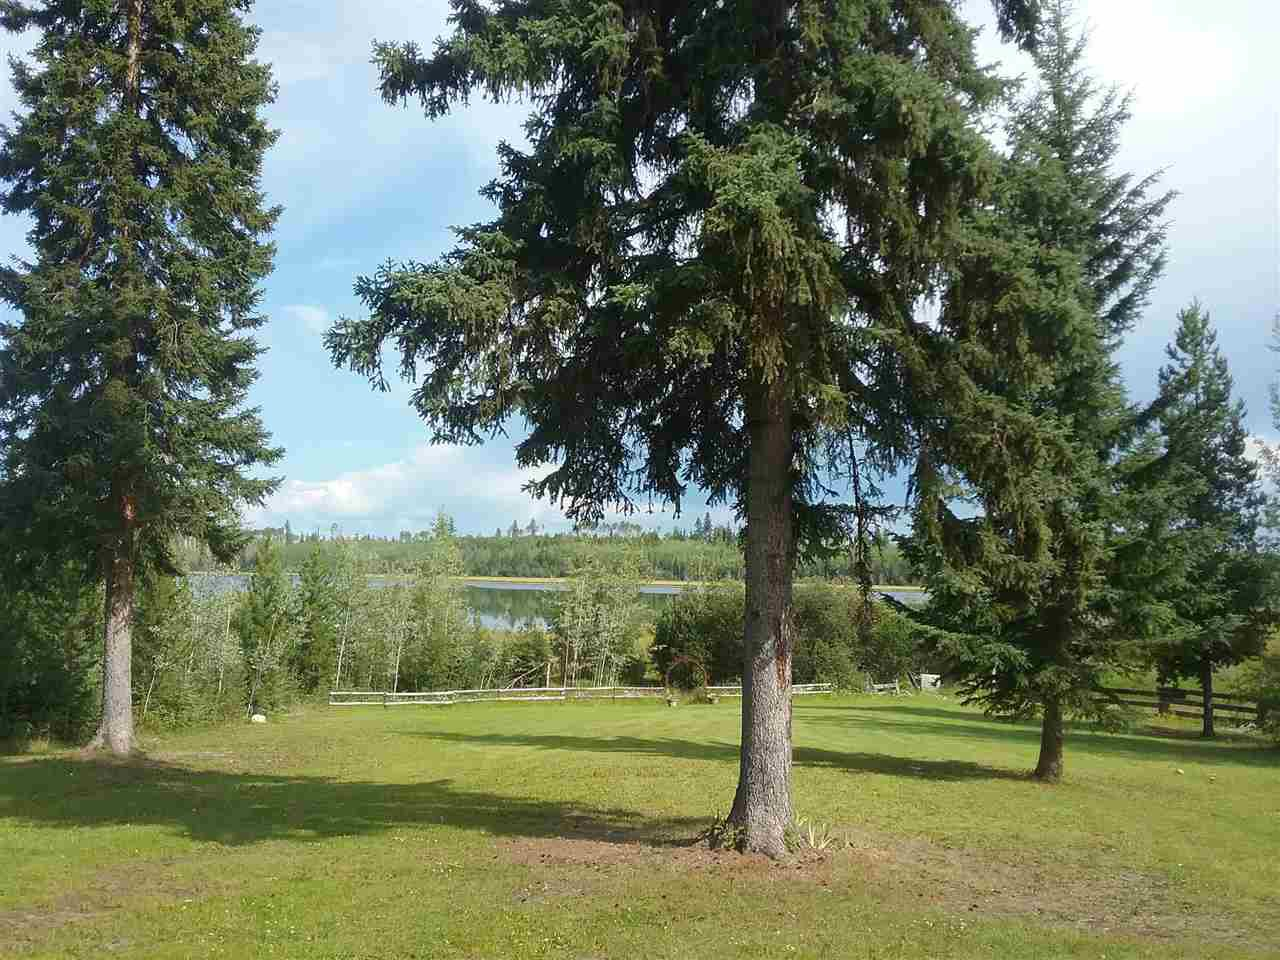 Photo 12: Photos: 4880 BELLS LAKE Road: Horsefly House for sale (Williams Lake (Zone 27))  : MLS®# R2377815